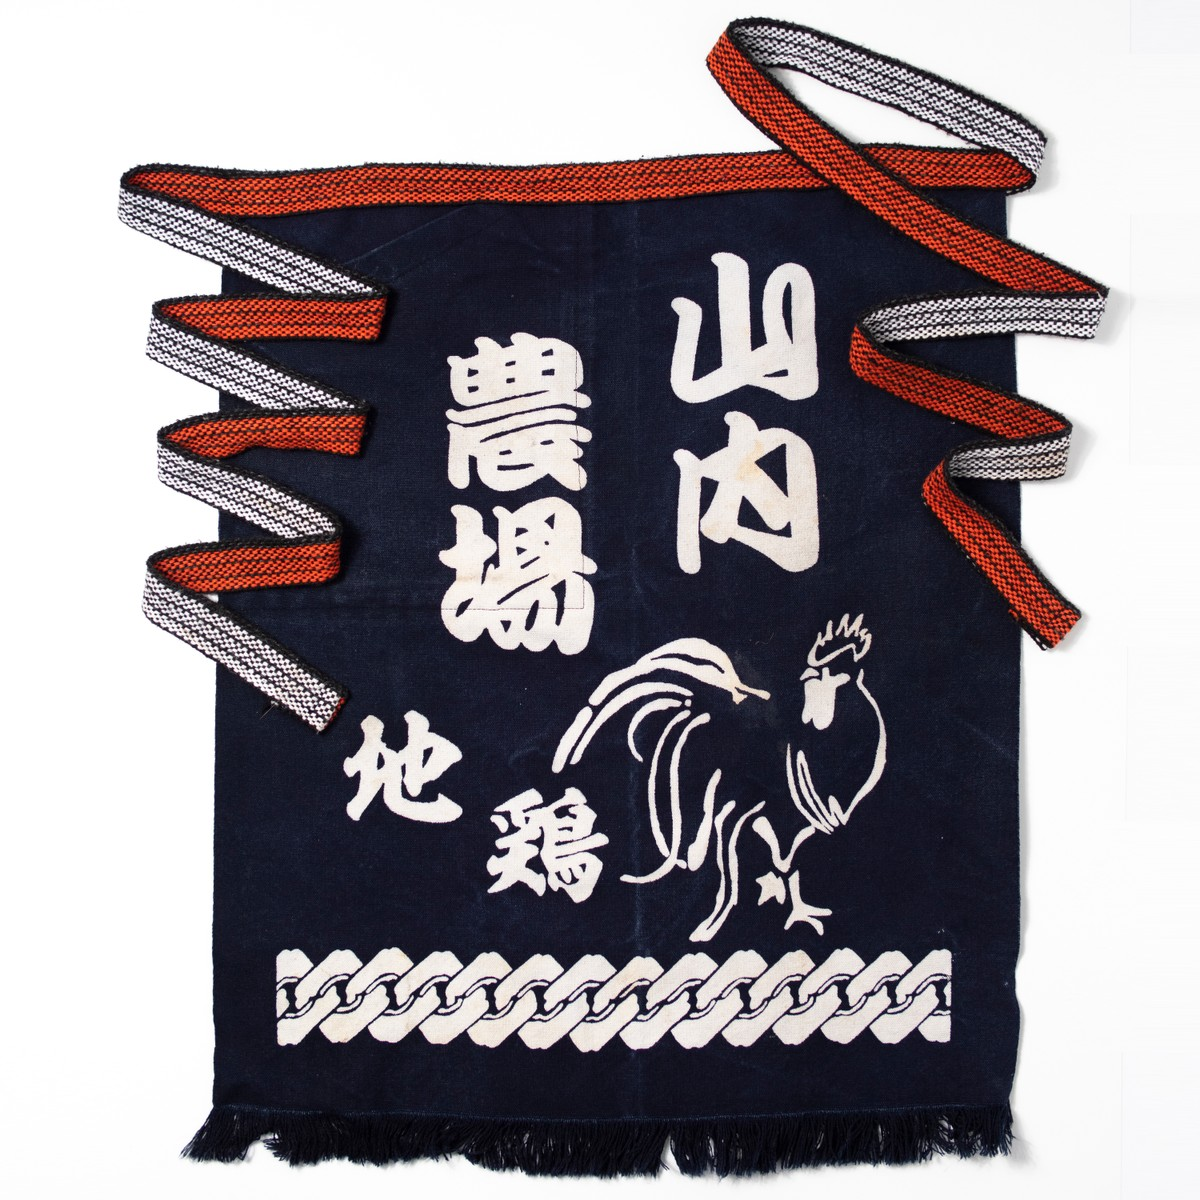 Photo of Vintage Maekake Apron: Yamauchi Farm